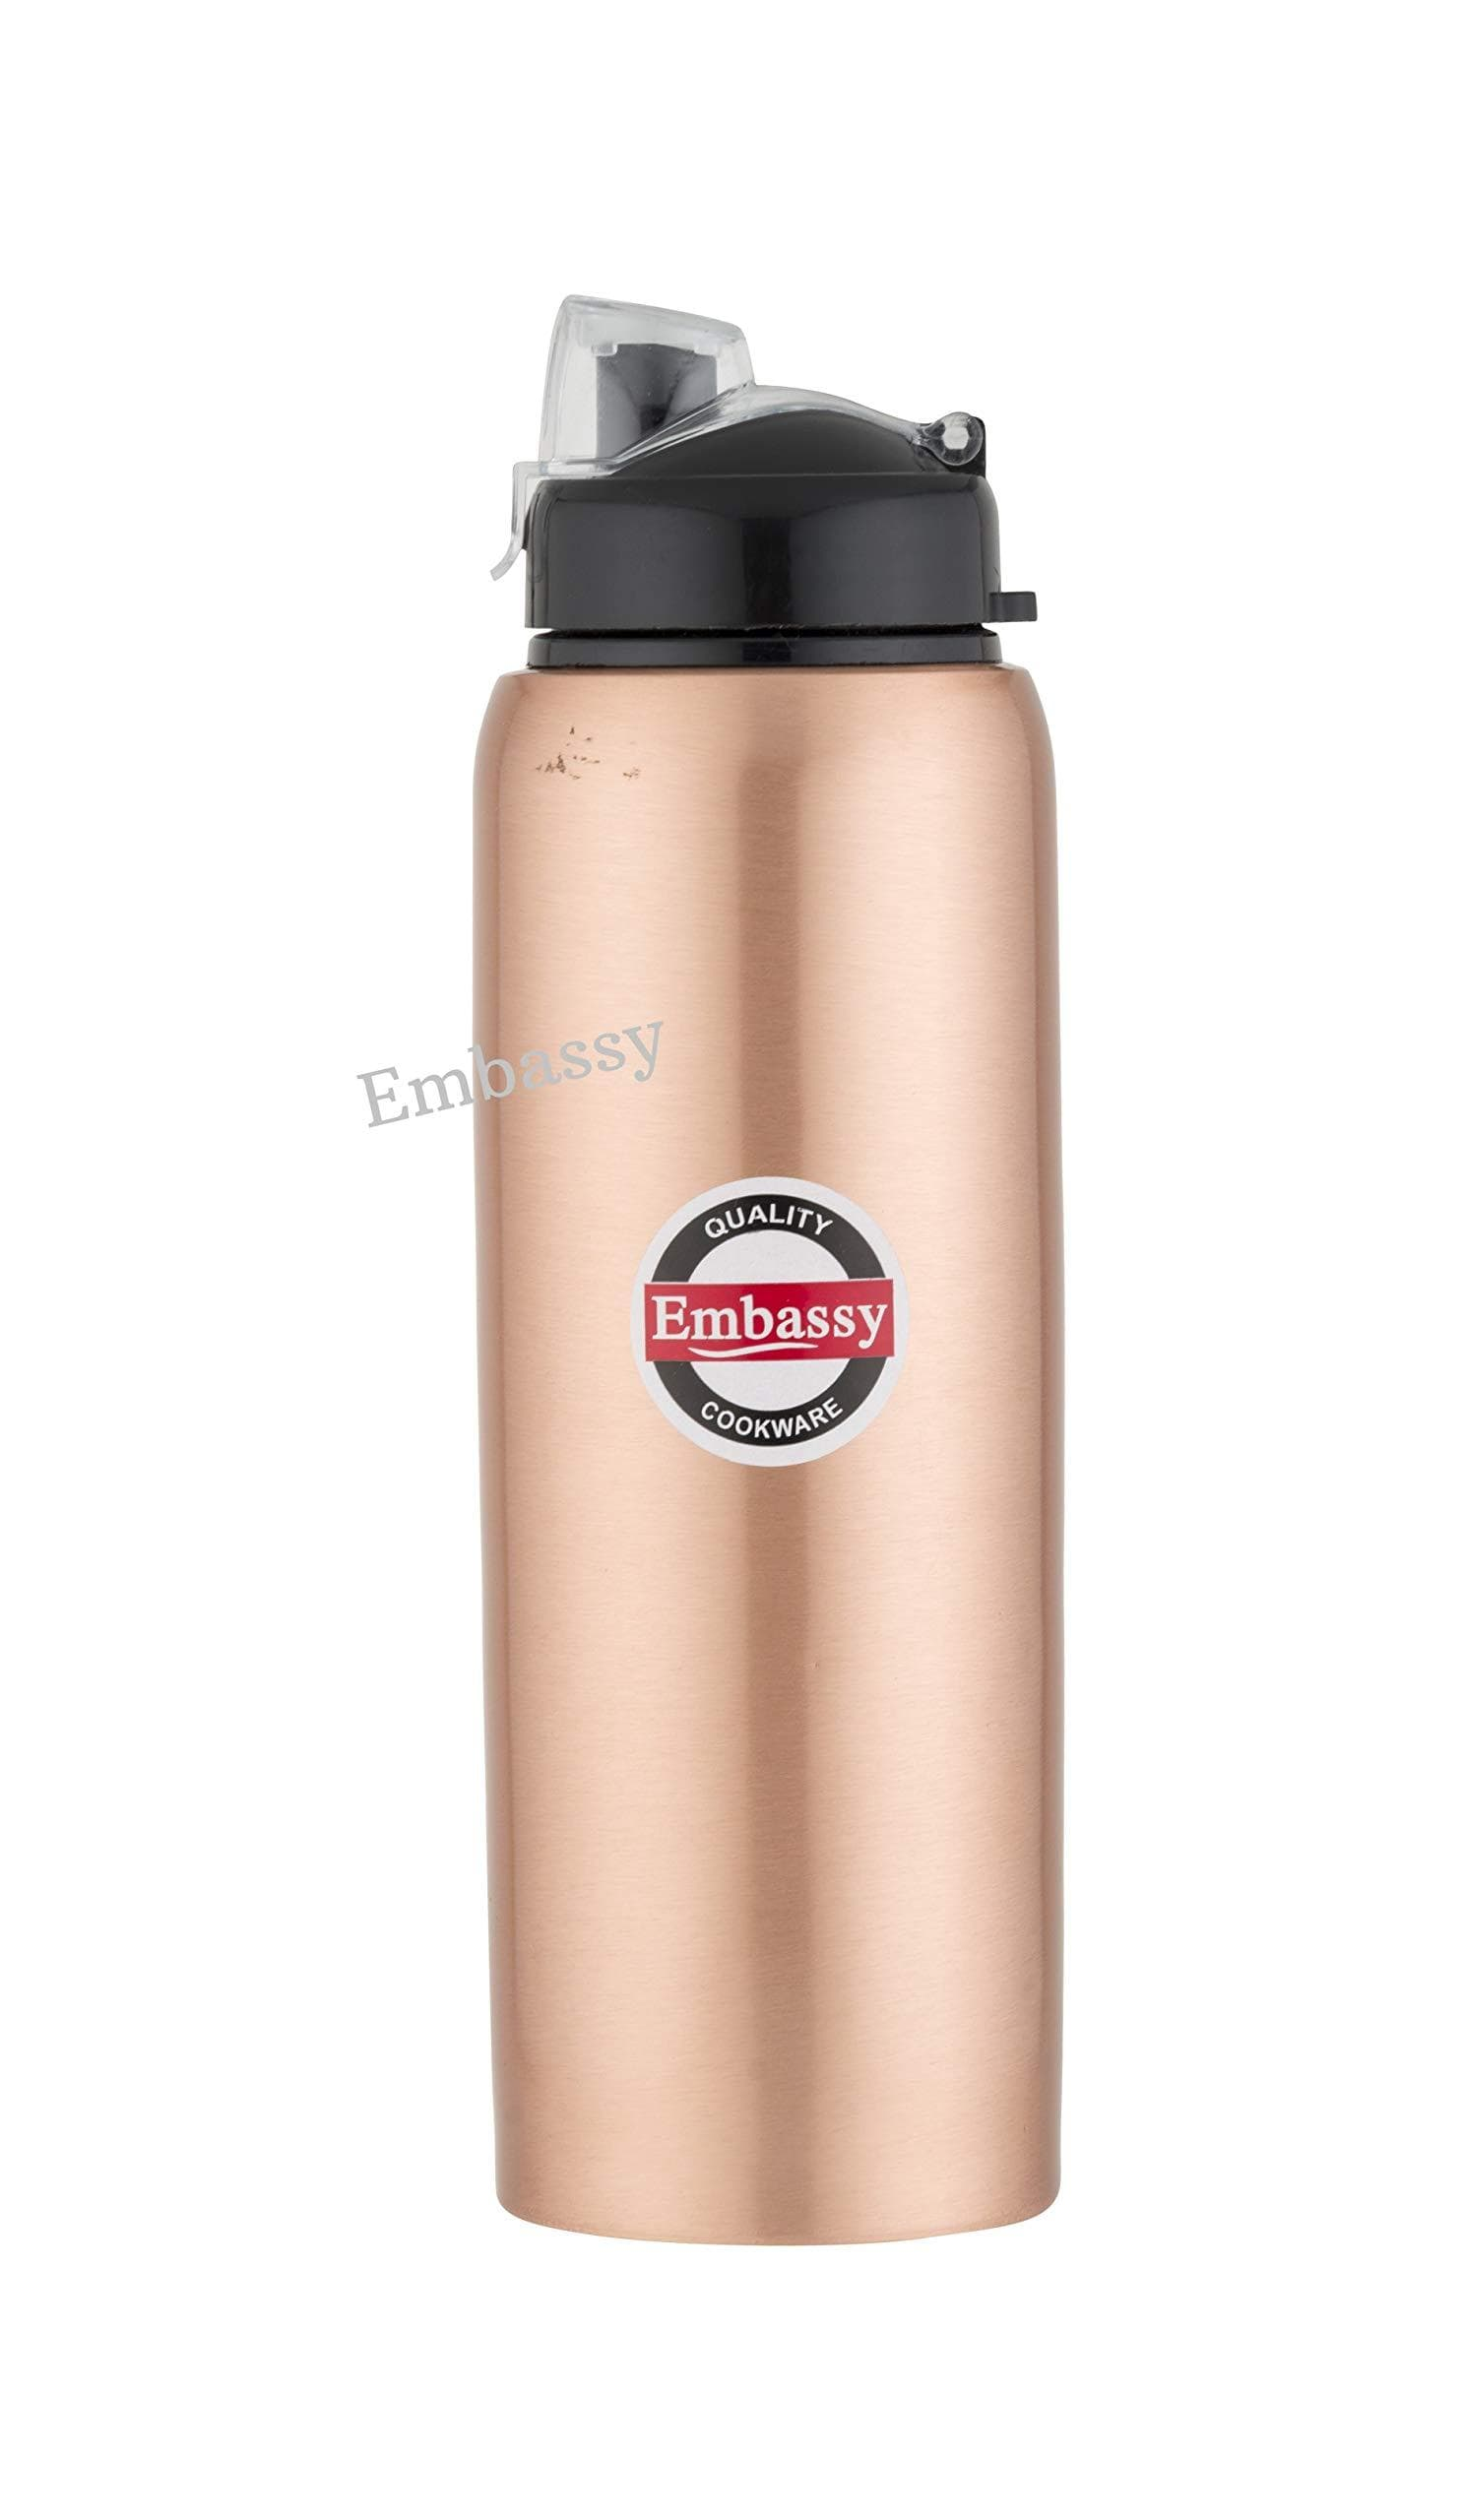 Embassy Premium Copper Water Bottle, Sipper, 600 ml, Pack of 1 - Leak-Proof, Jointless and Pure Copper - KITCHEN MART